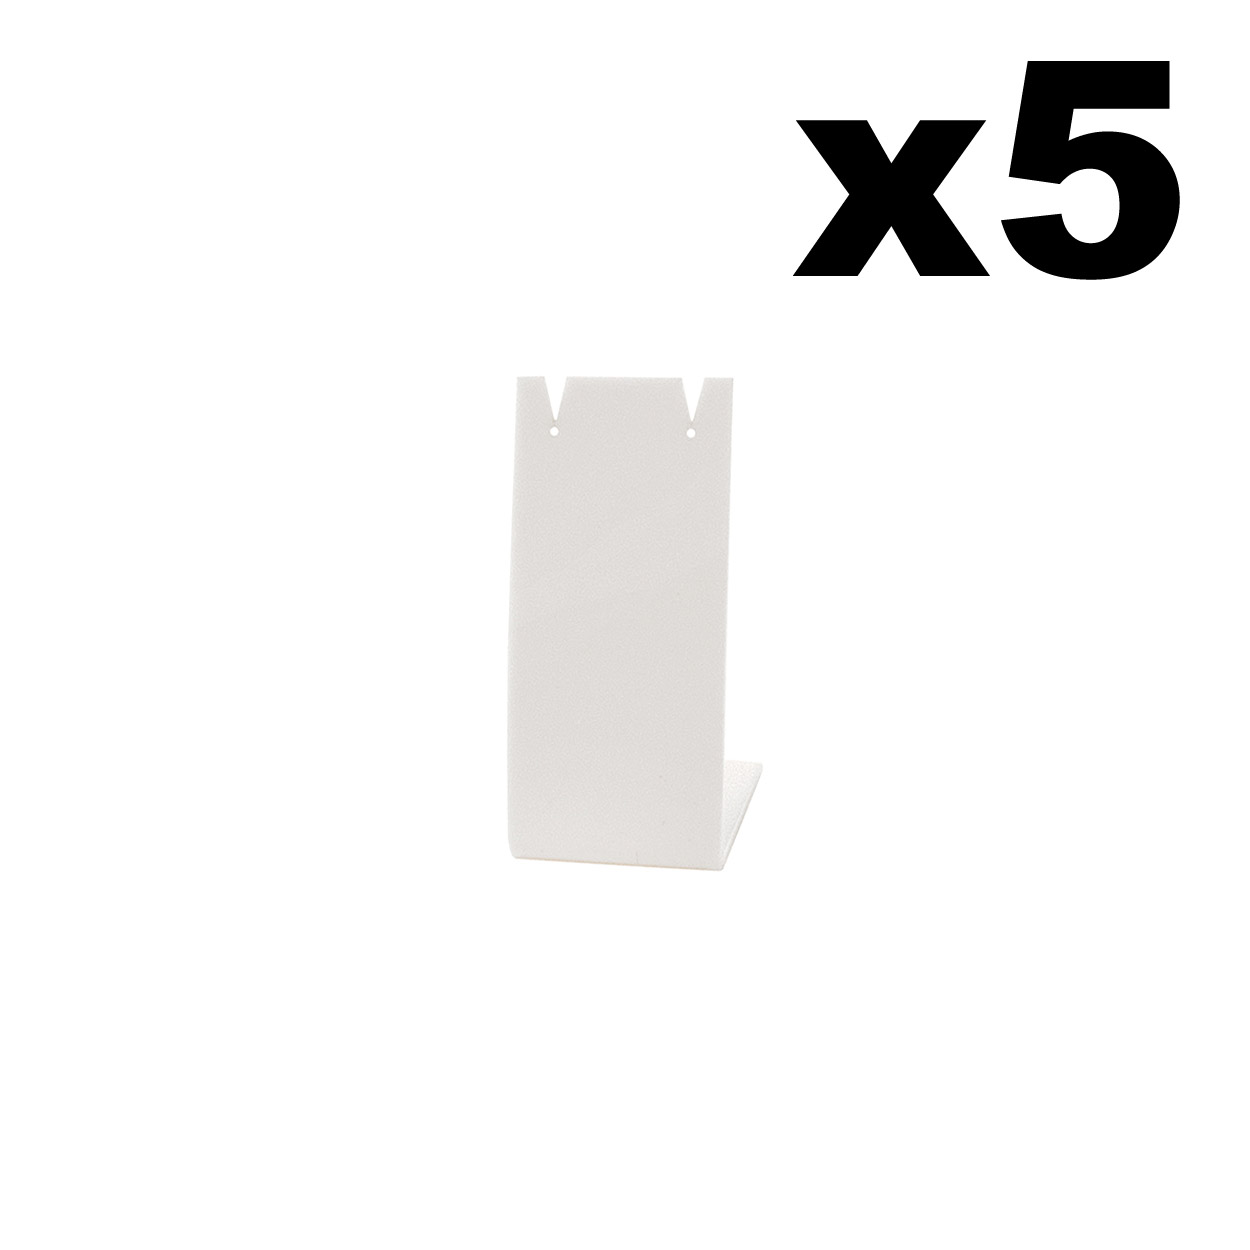 Angled Acrylic Earring Display Stand in White. pack of 5. Height 73mm.